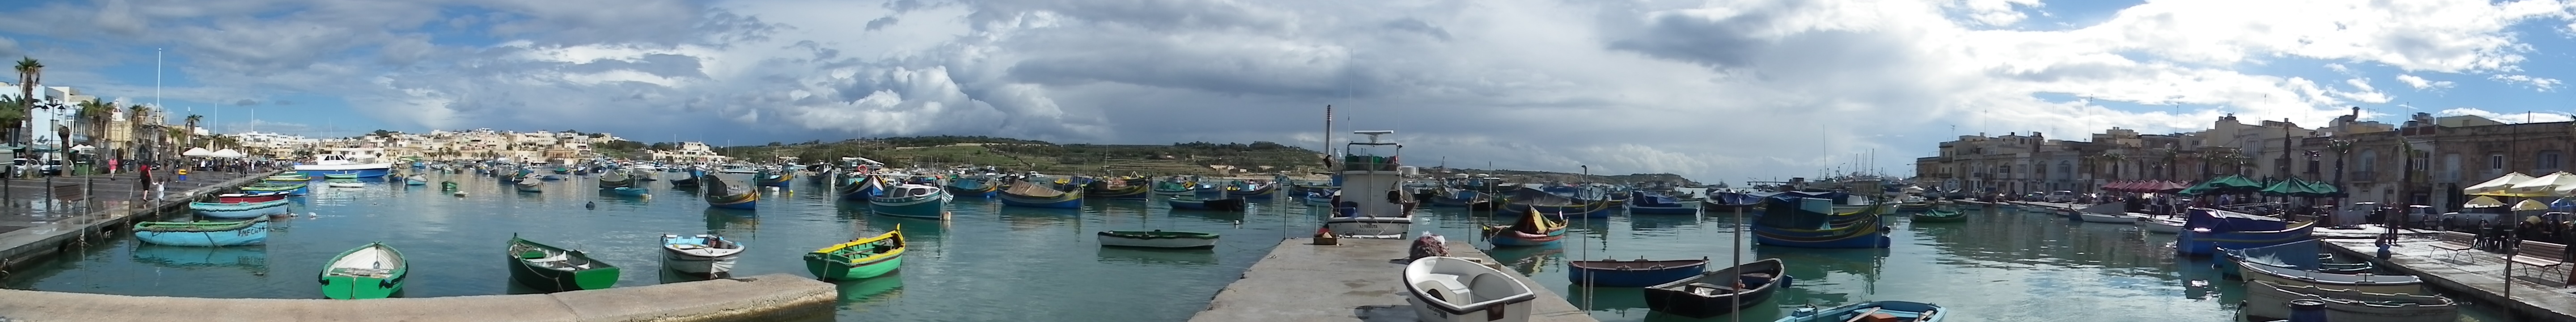 harbour boats - pano by boybeck